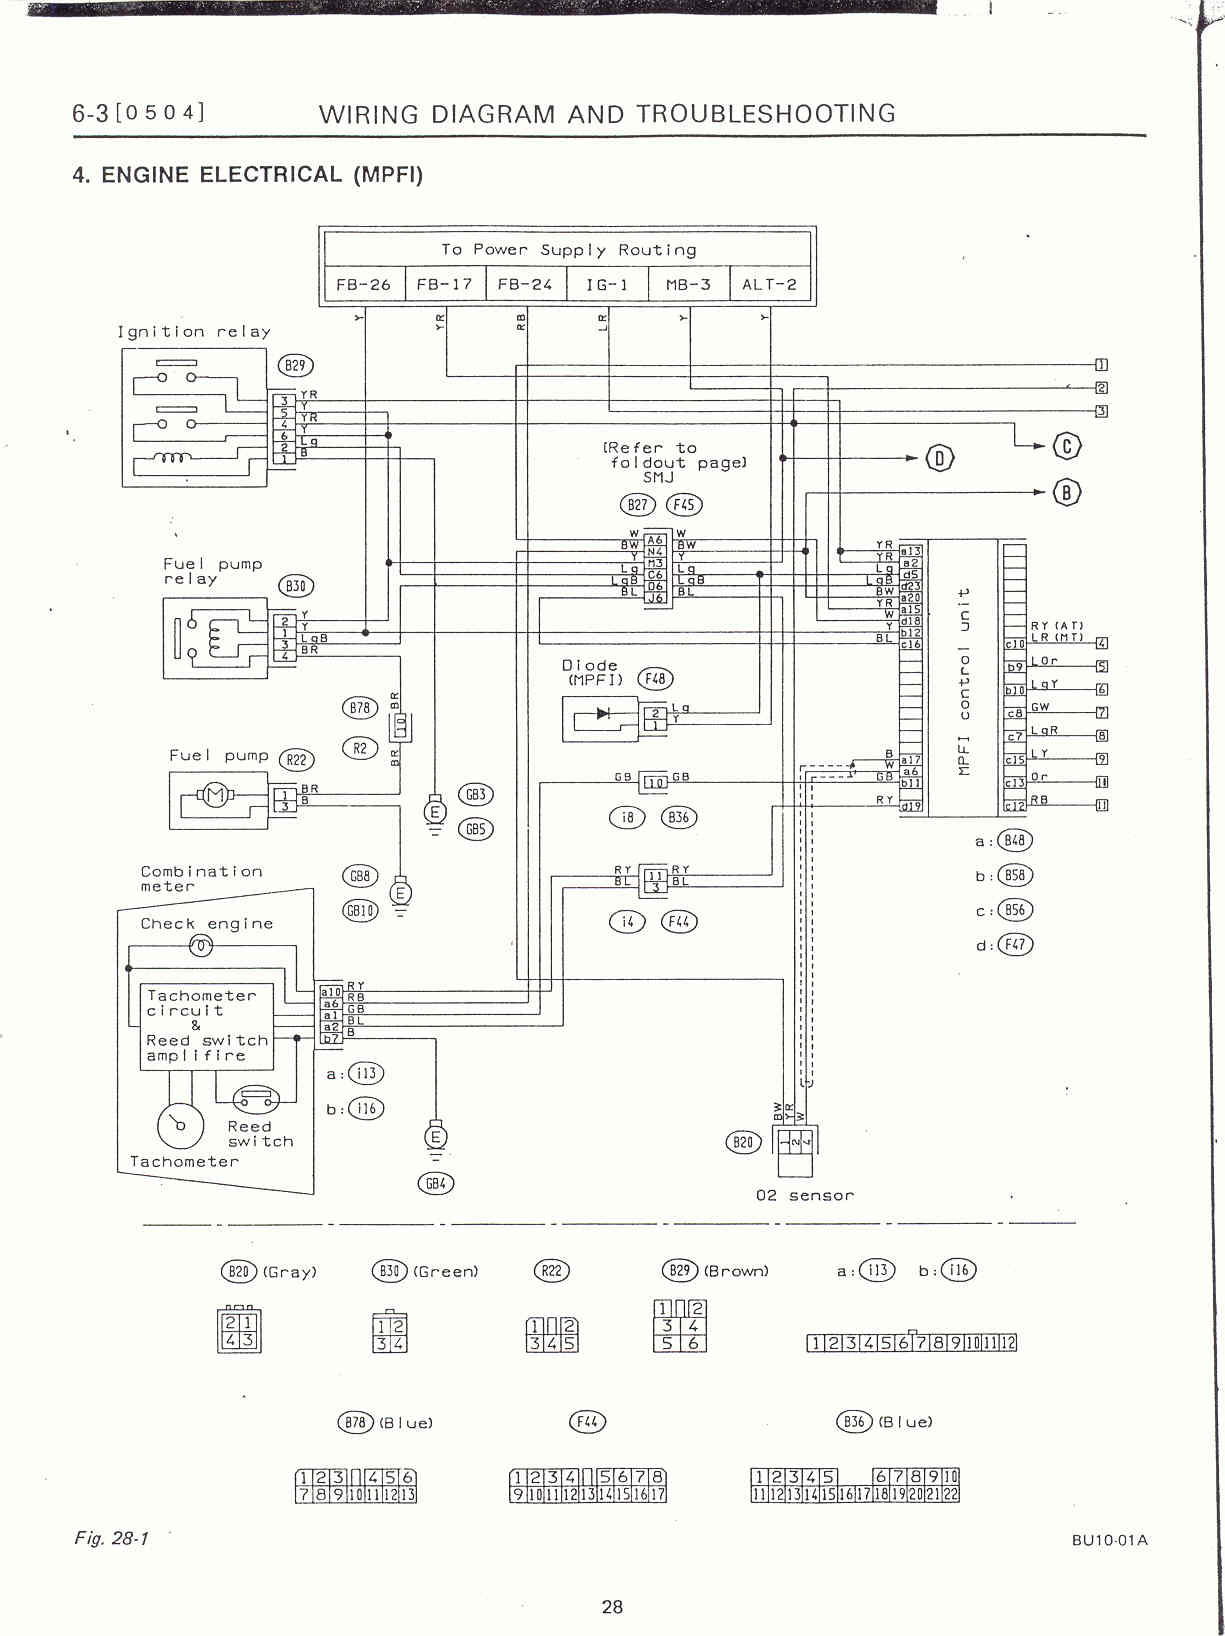 6 wire motor wiring diagram